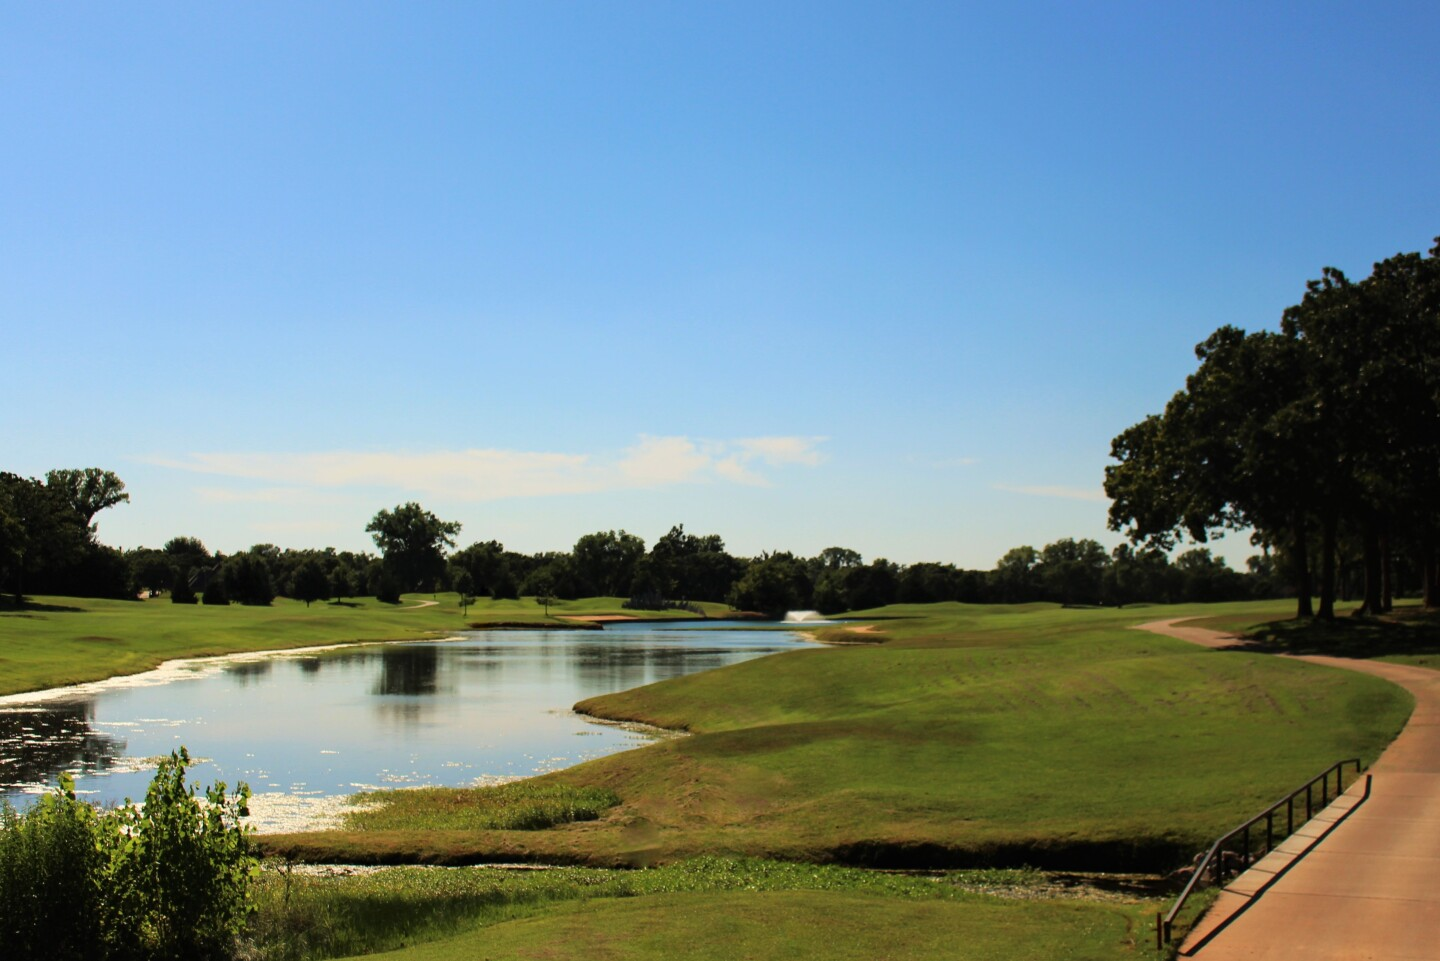 9071-thirteen-out-of-132-players-in-ajga-junior-at-oak-tree-are-edmond-natives.JPG